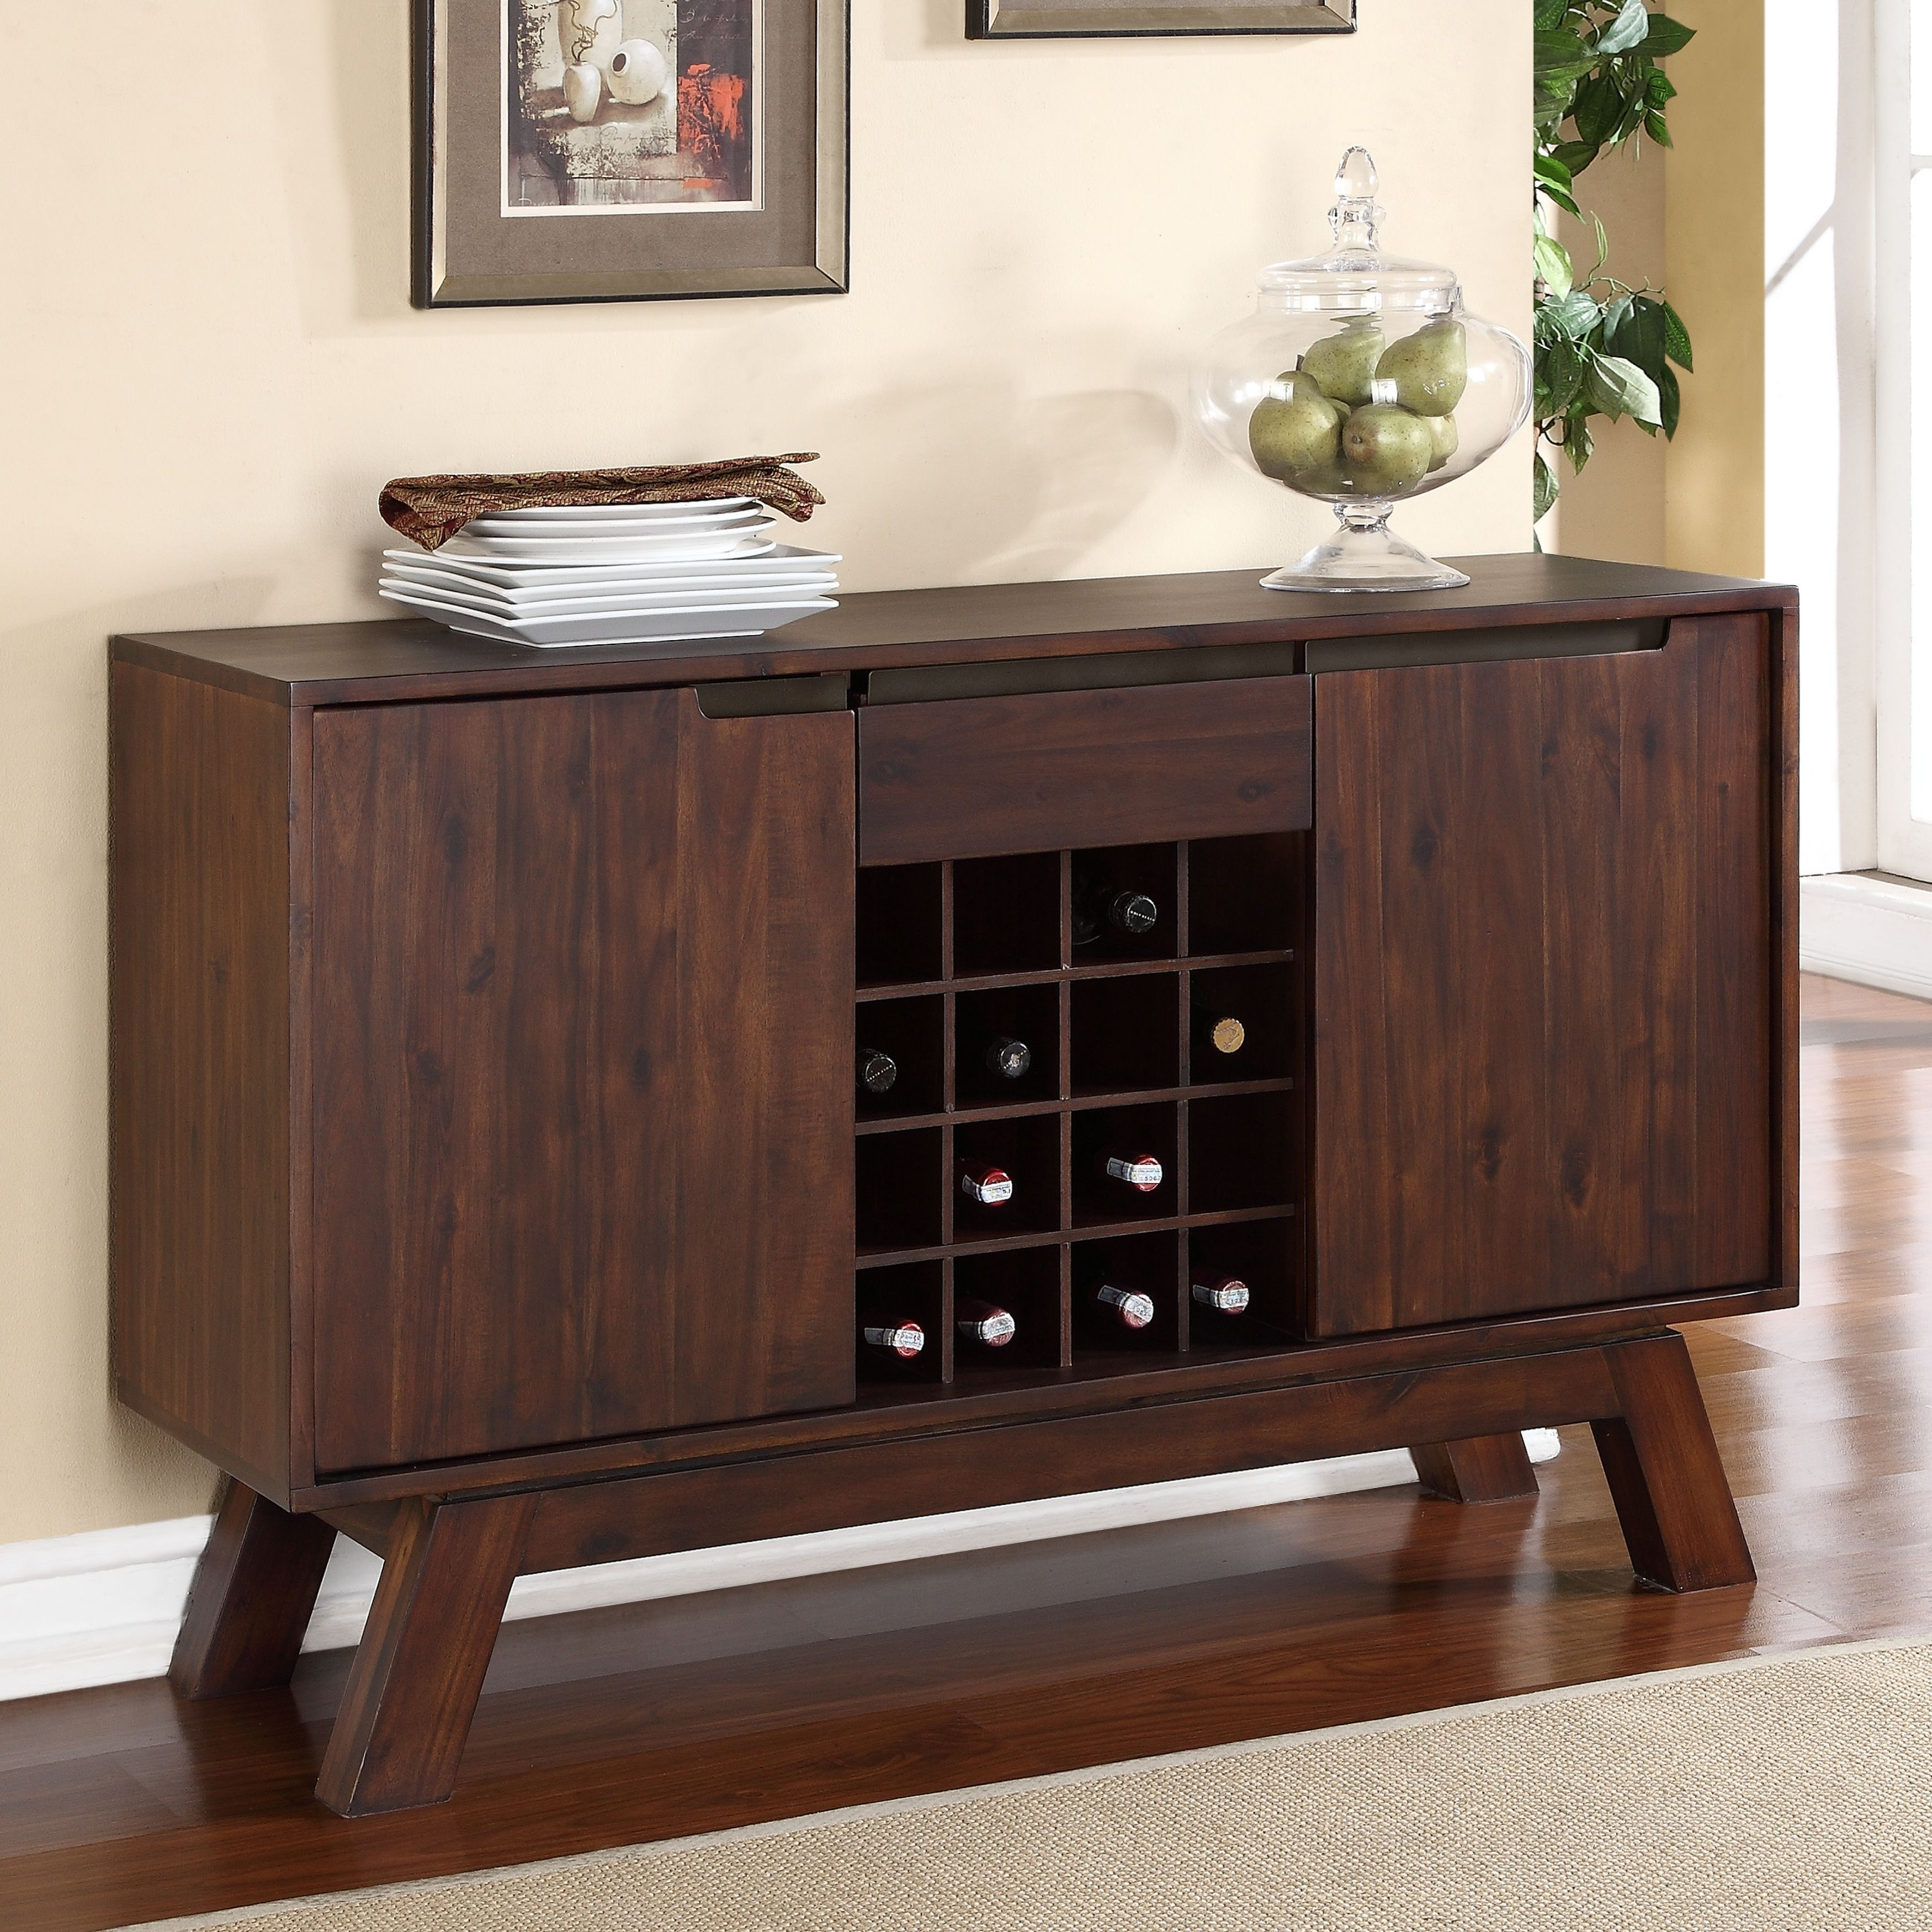 Buy Modern & Contemporary Buffets, Sideboards & China Intended For Contemporary Wooden Buffets With Four Open Compartments And Metal Tapered Legs (View 2 of 30)